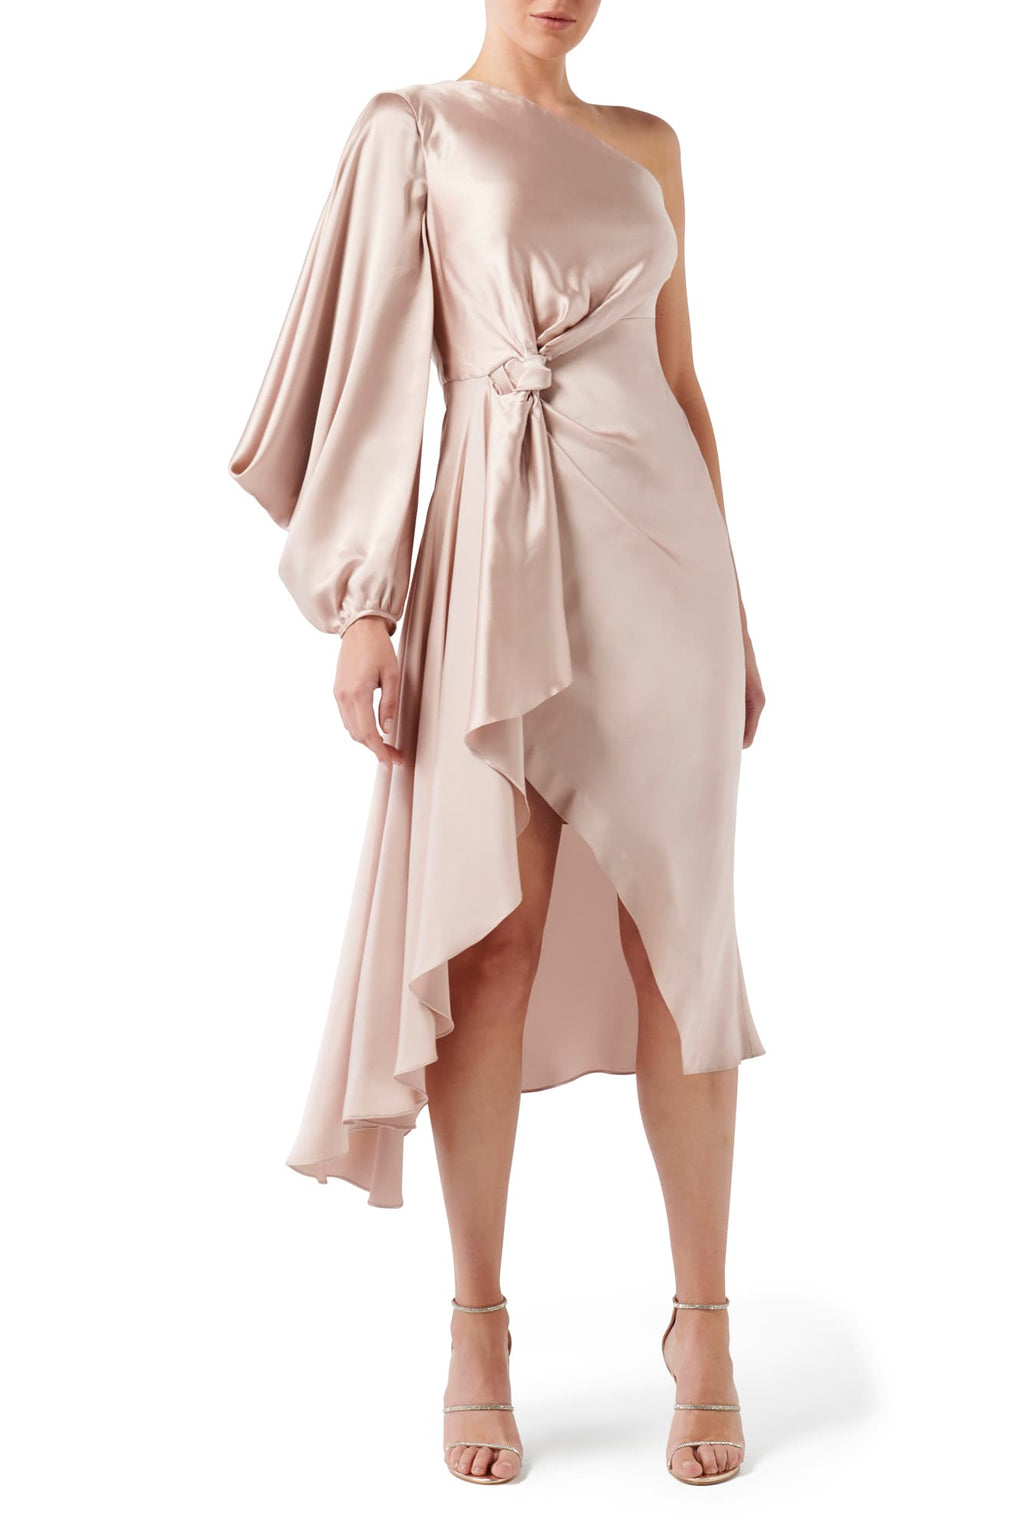 Attitude Scarf Knot Dress - Dusty Pink